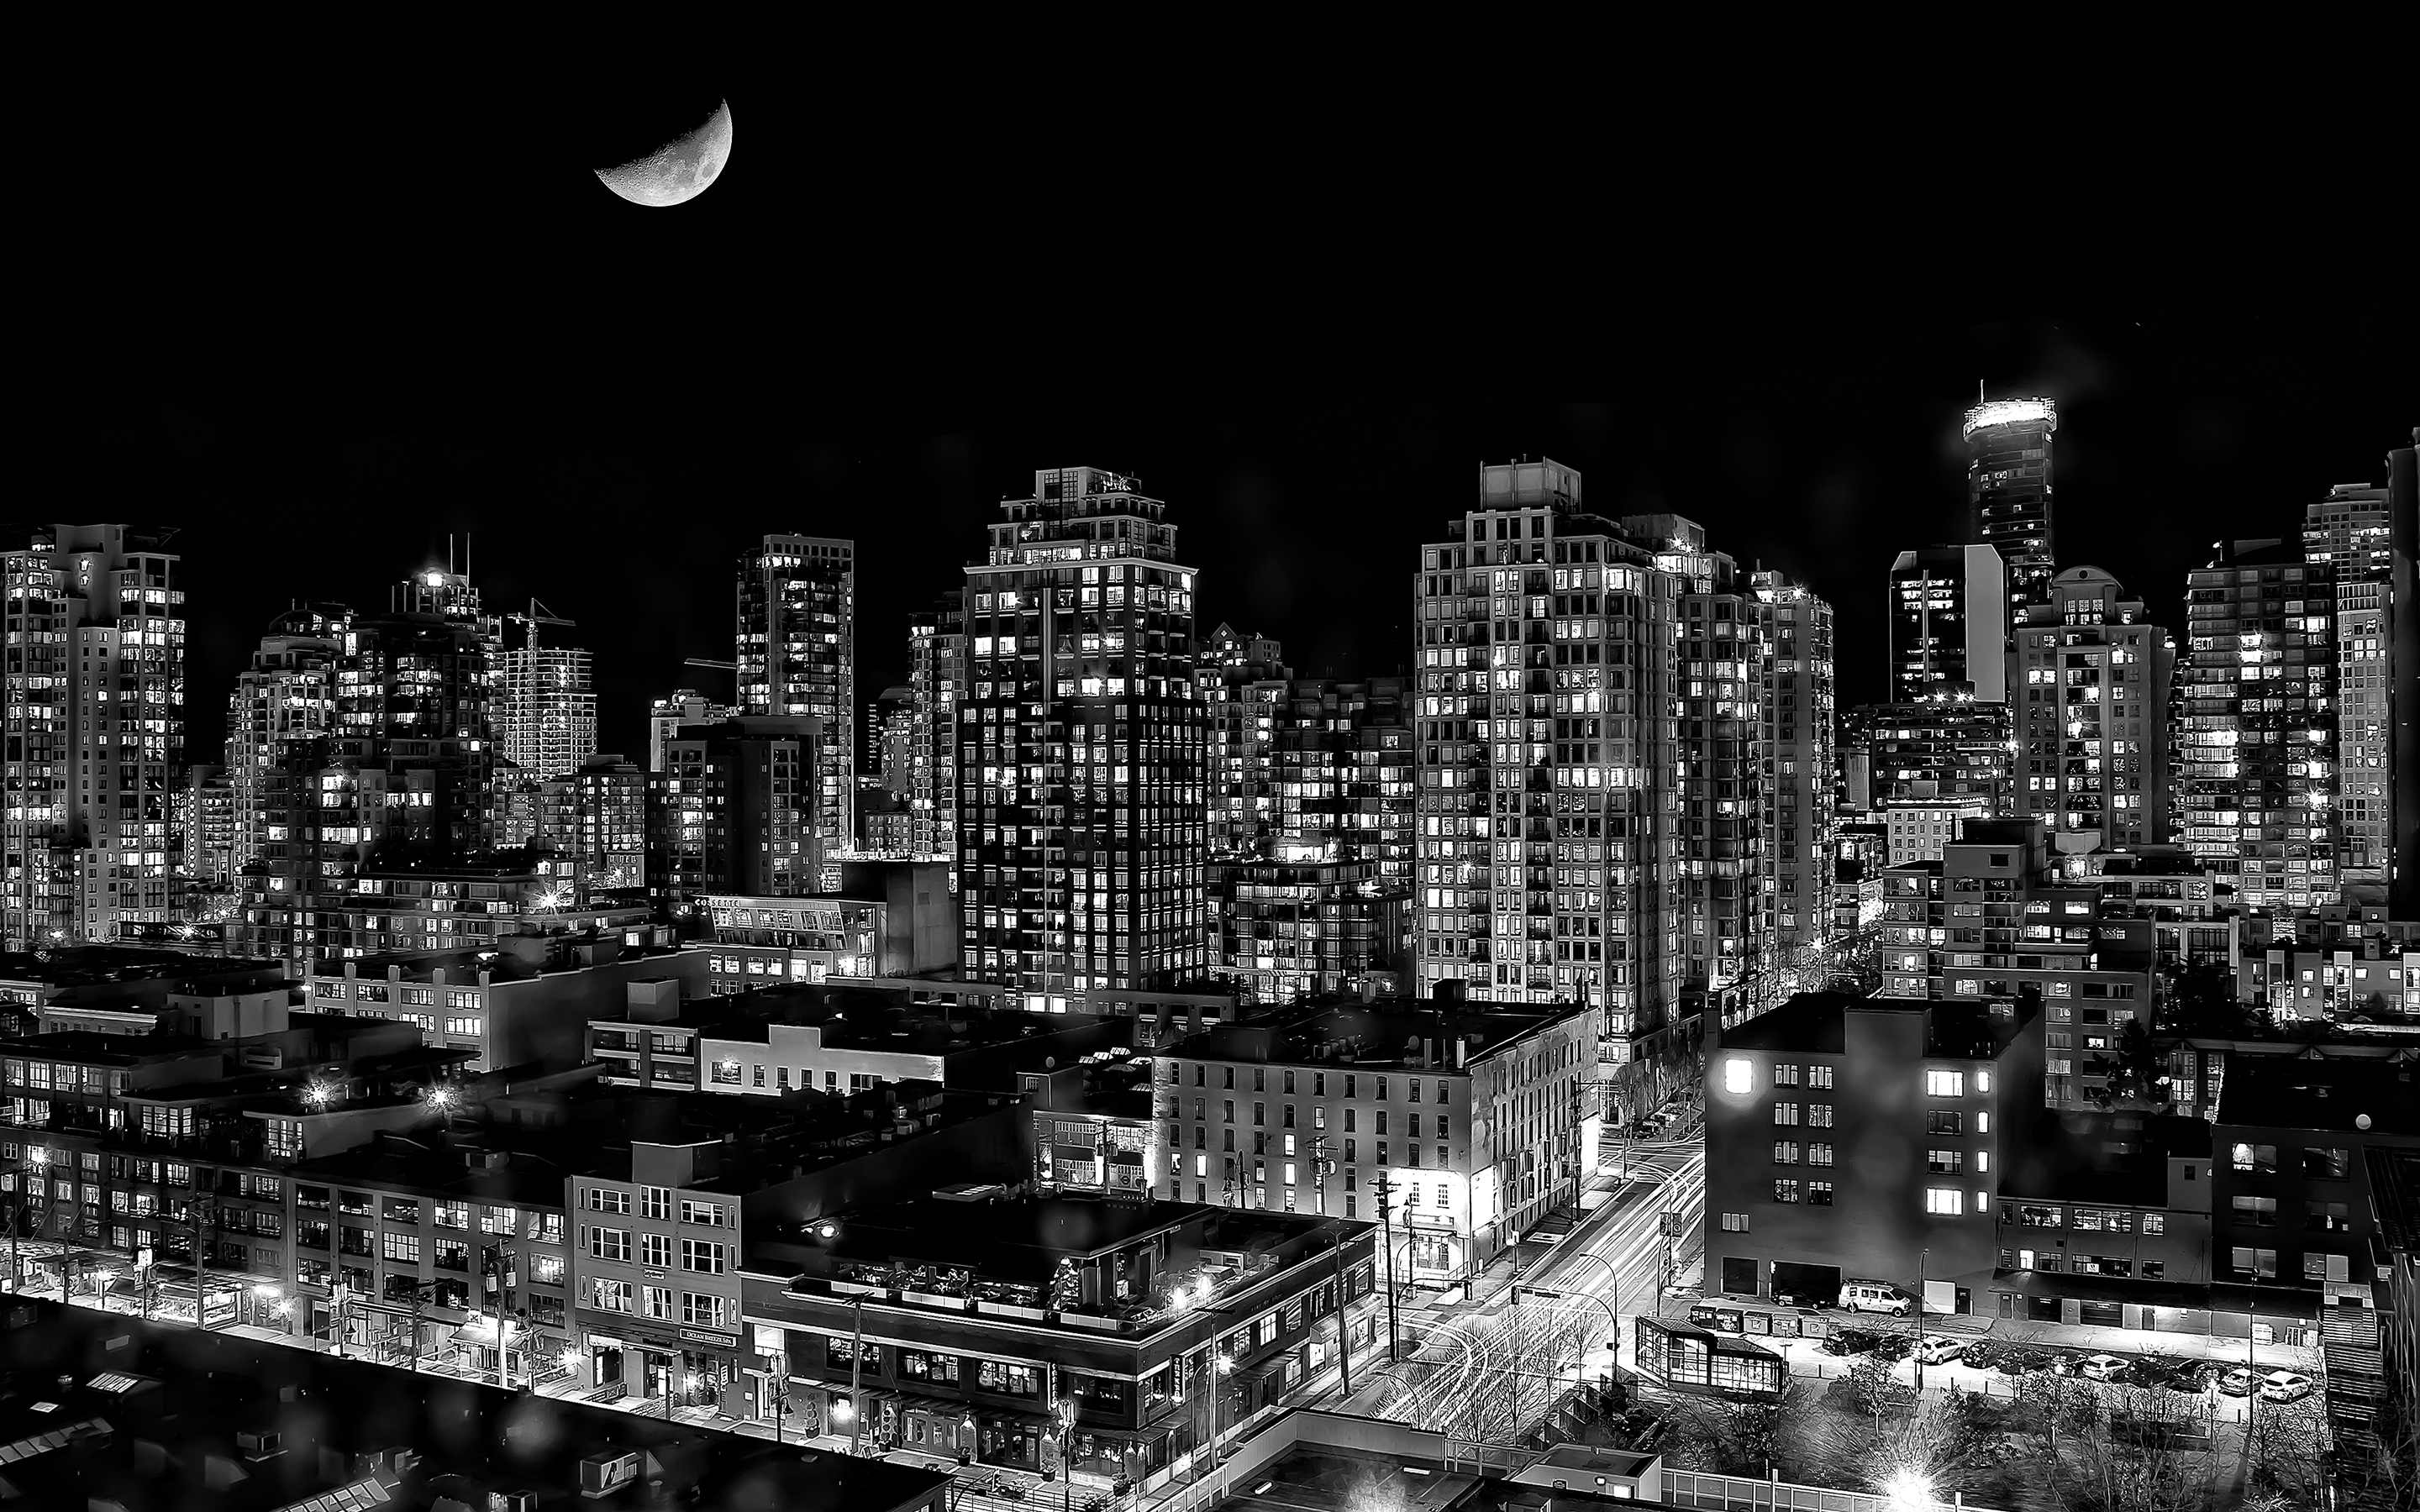 city lights black and white - photo #27